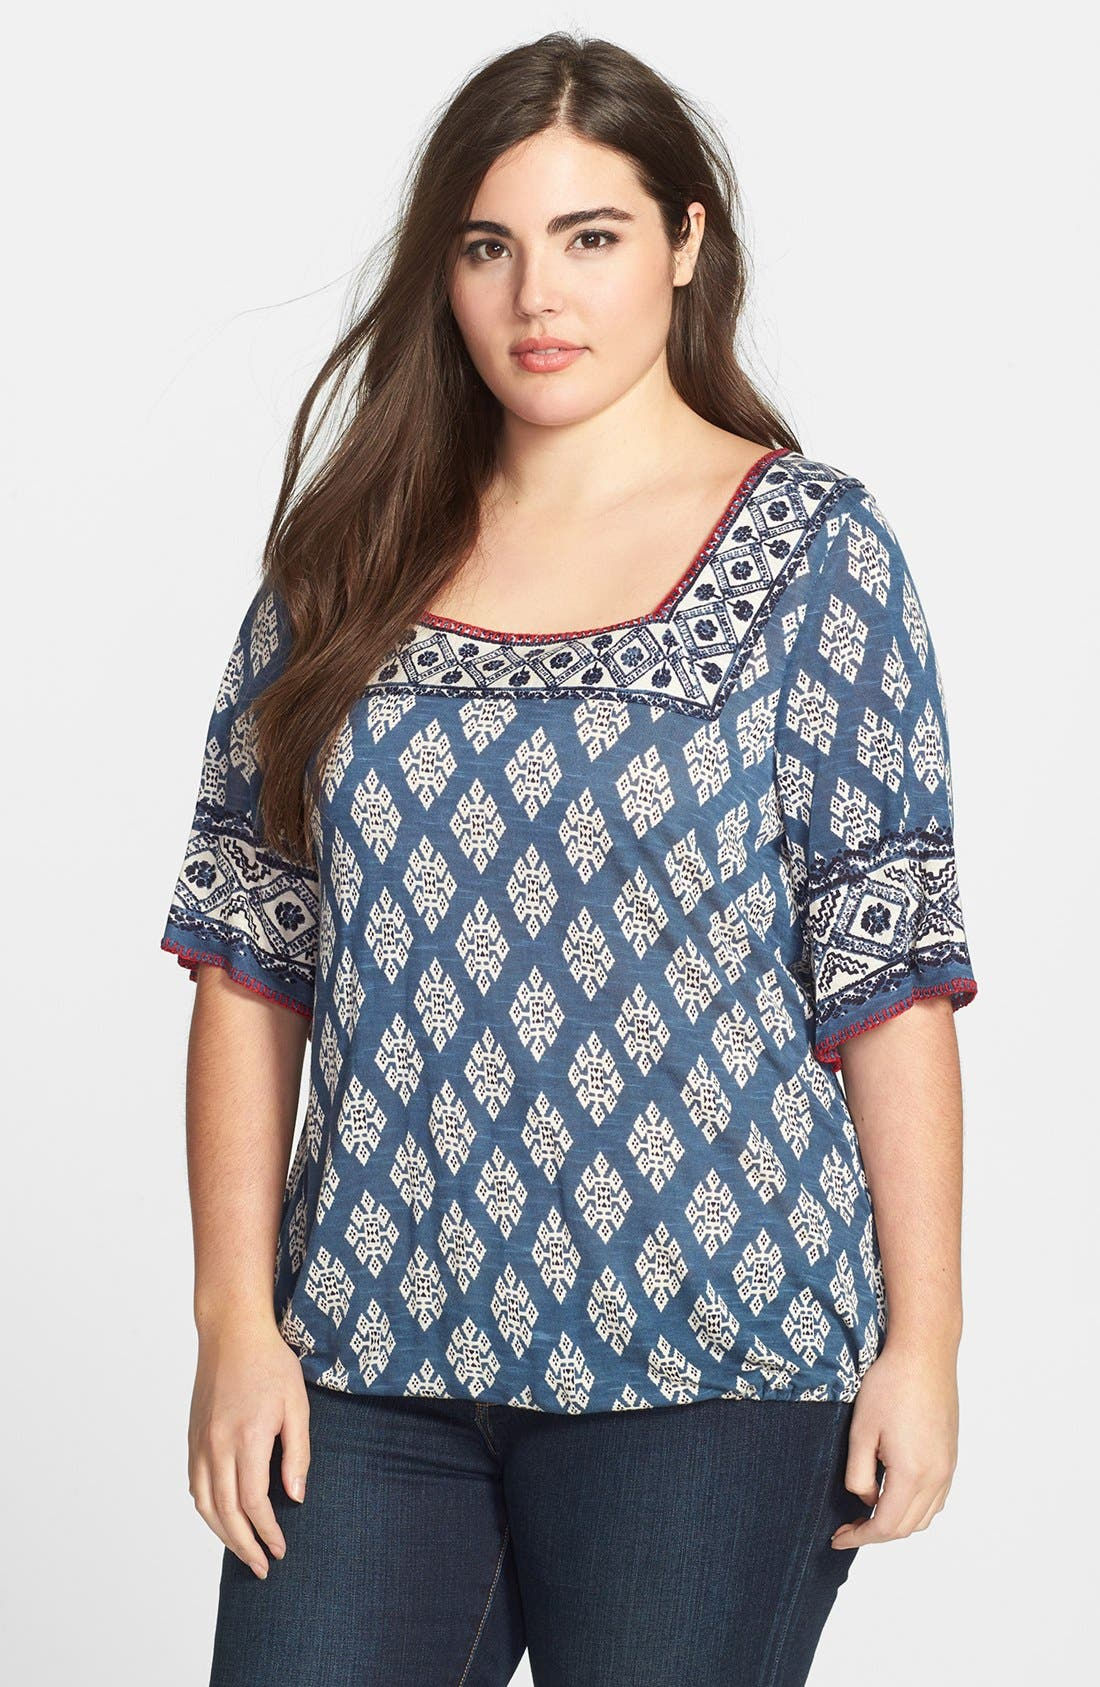 Alternate Image 1 Selected - Lucky Brand 'Portland Market' Top (Plus Size)